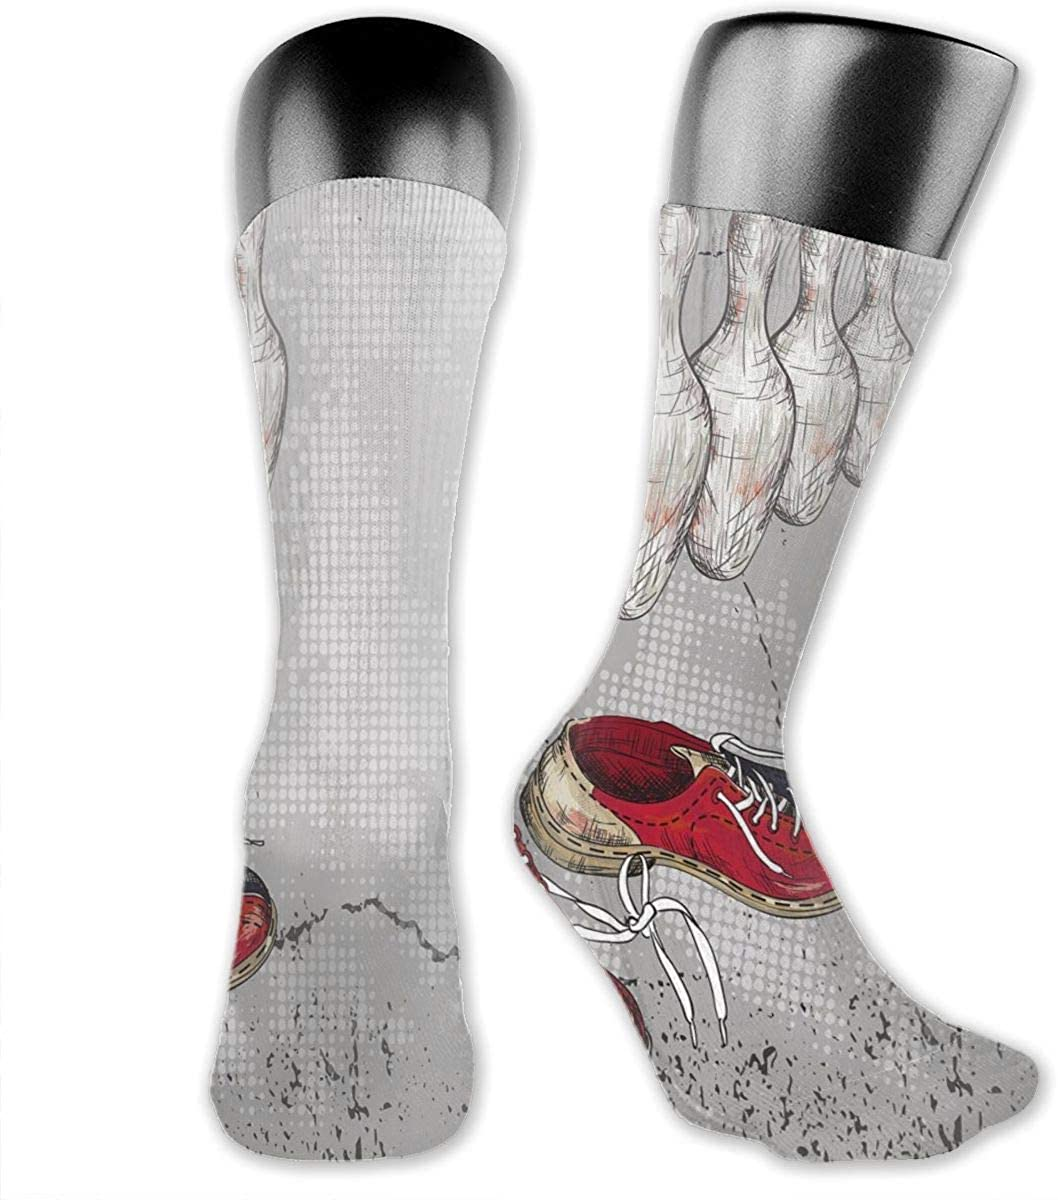 Compression Socks Medium Sock, Bowling Shoes Pins And Ball In Artistic Grunge Style Print